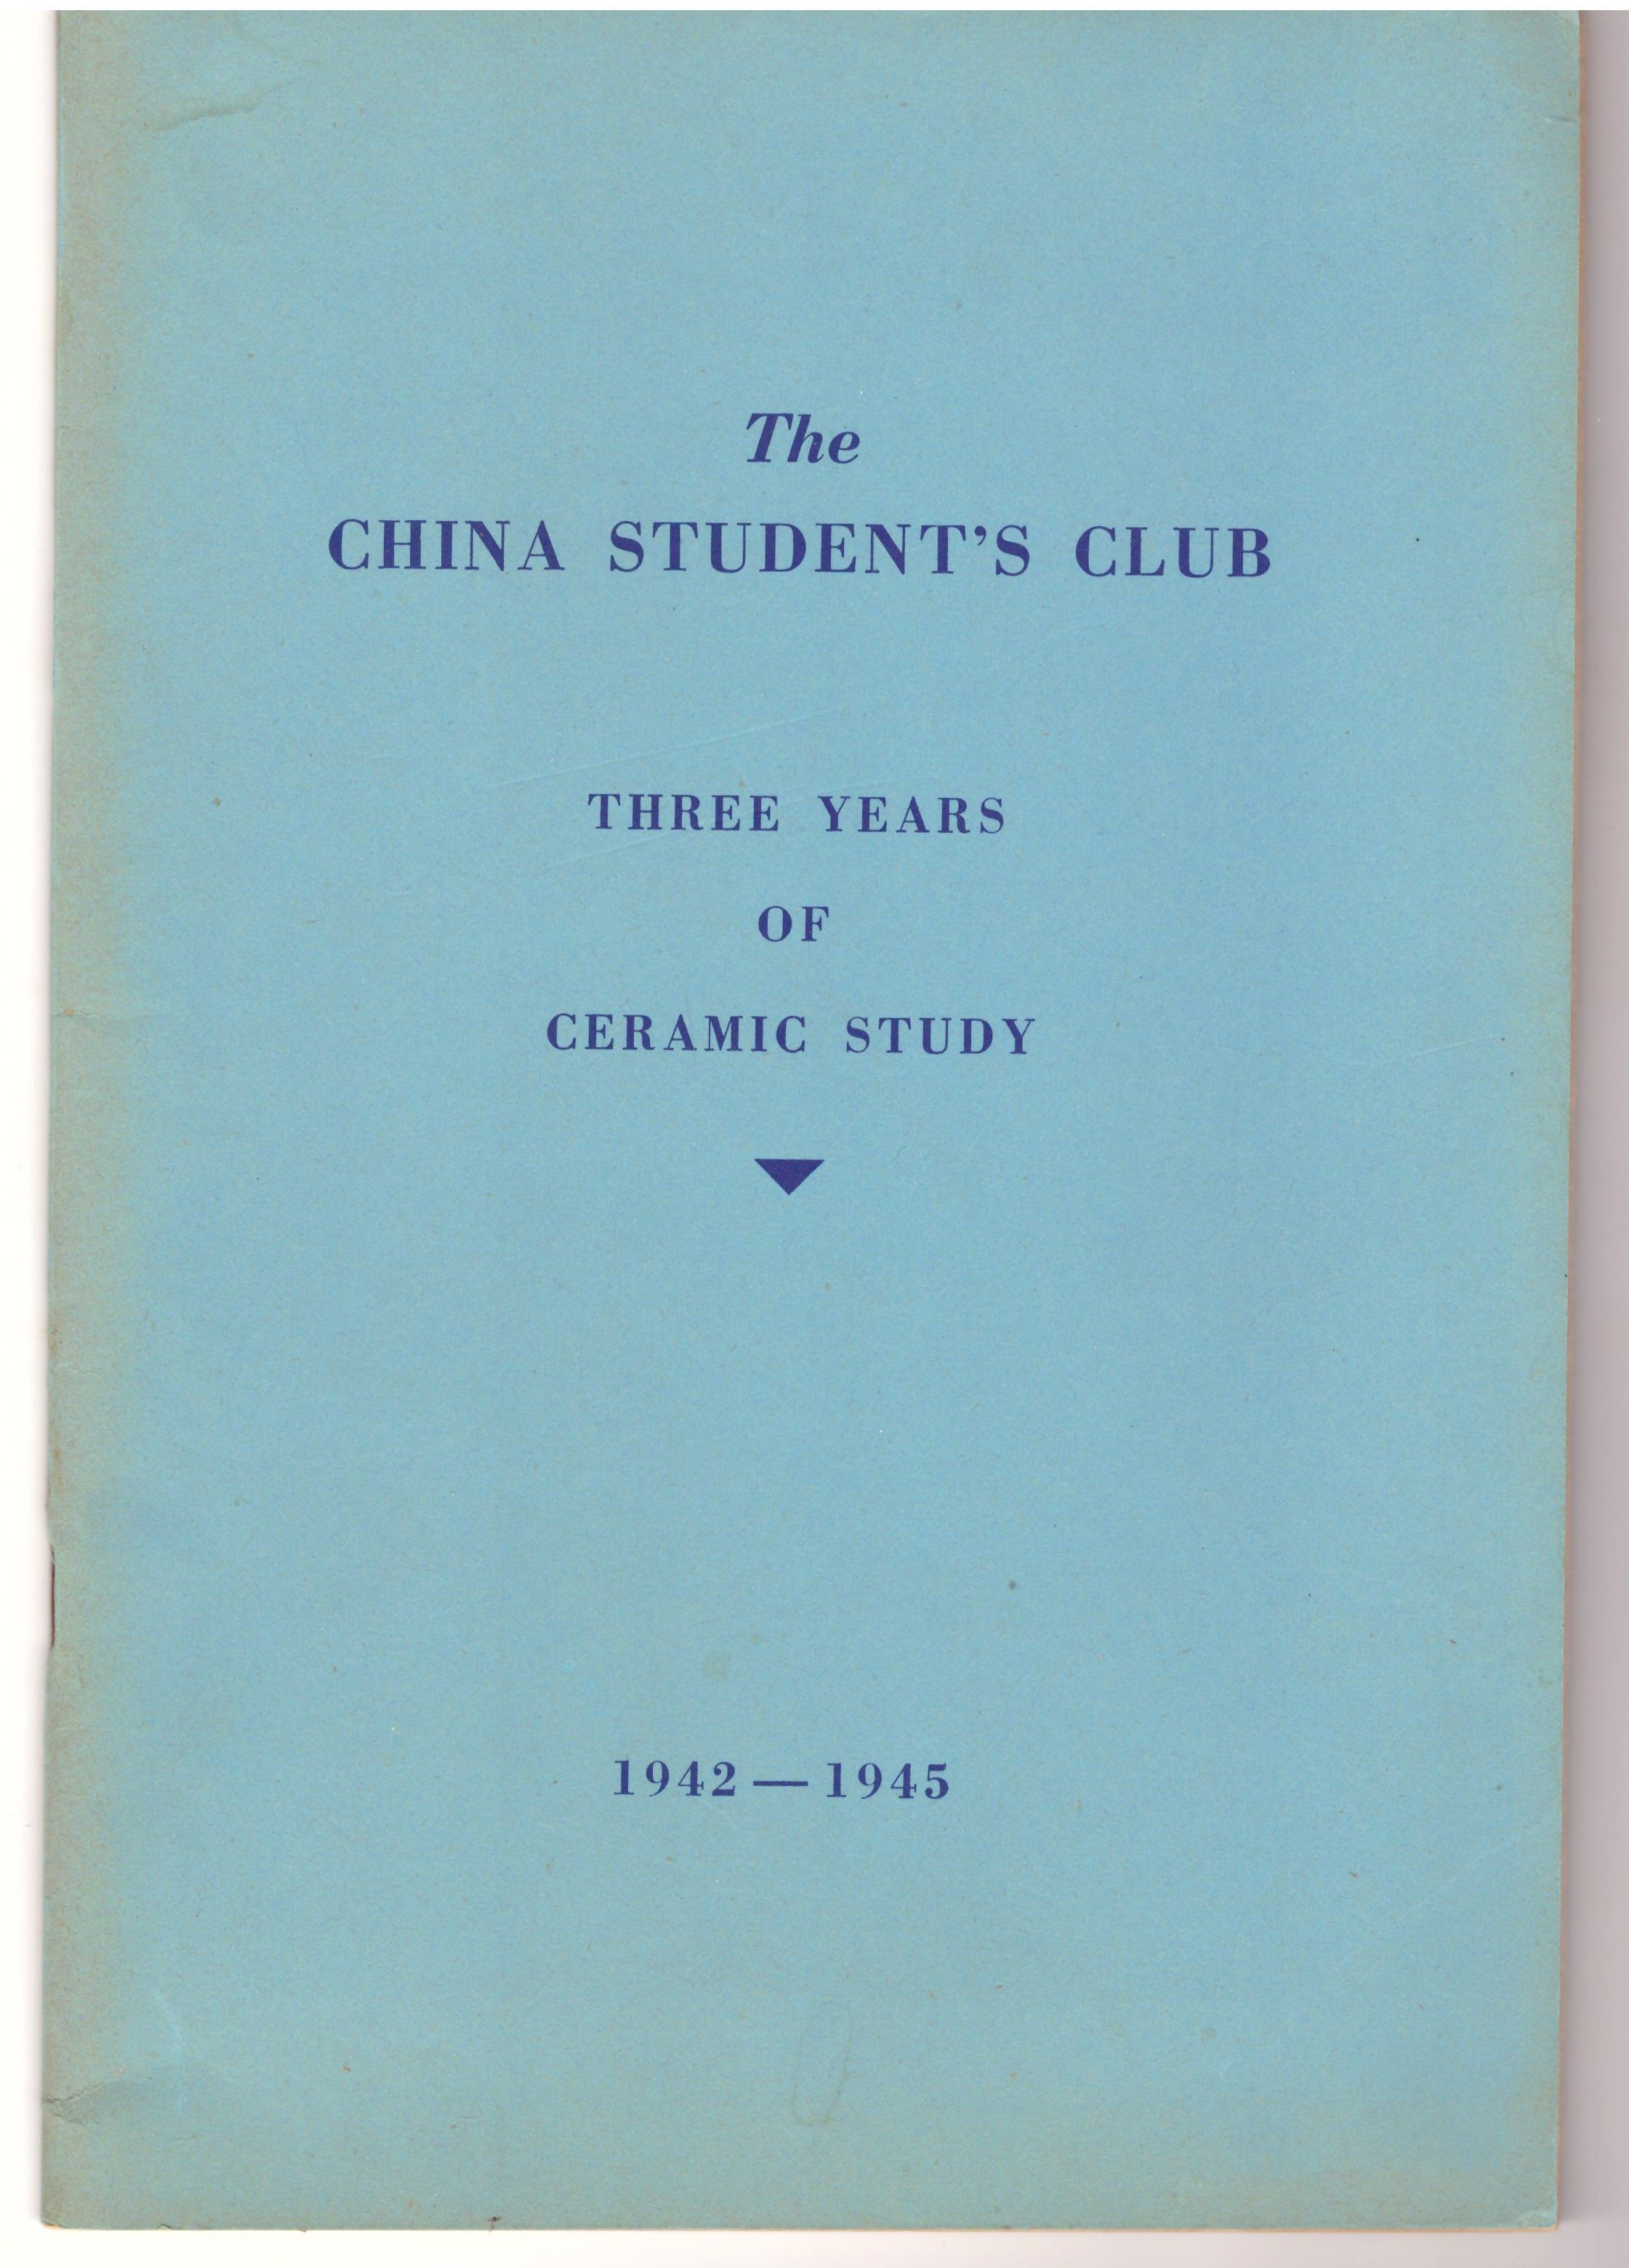 The China Student's Club - 3 Years of Ceramic Study 1942-1945, Fittz, Hultman, Waterhouse, Rueter